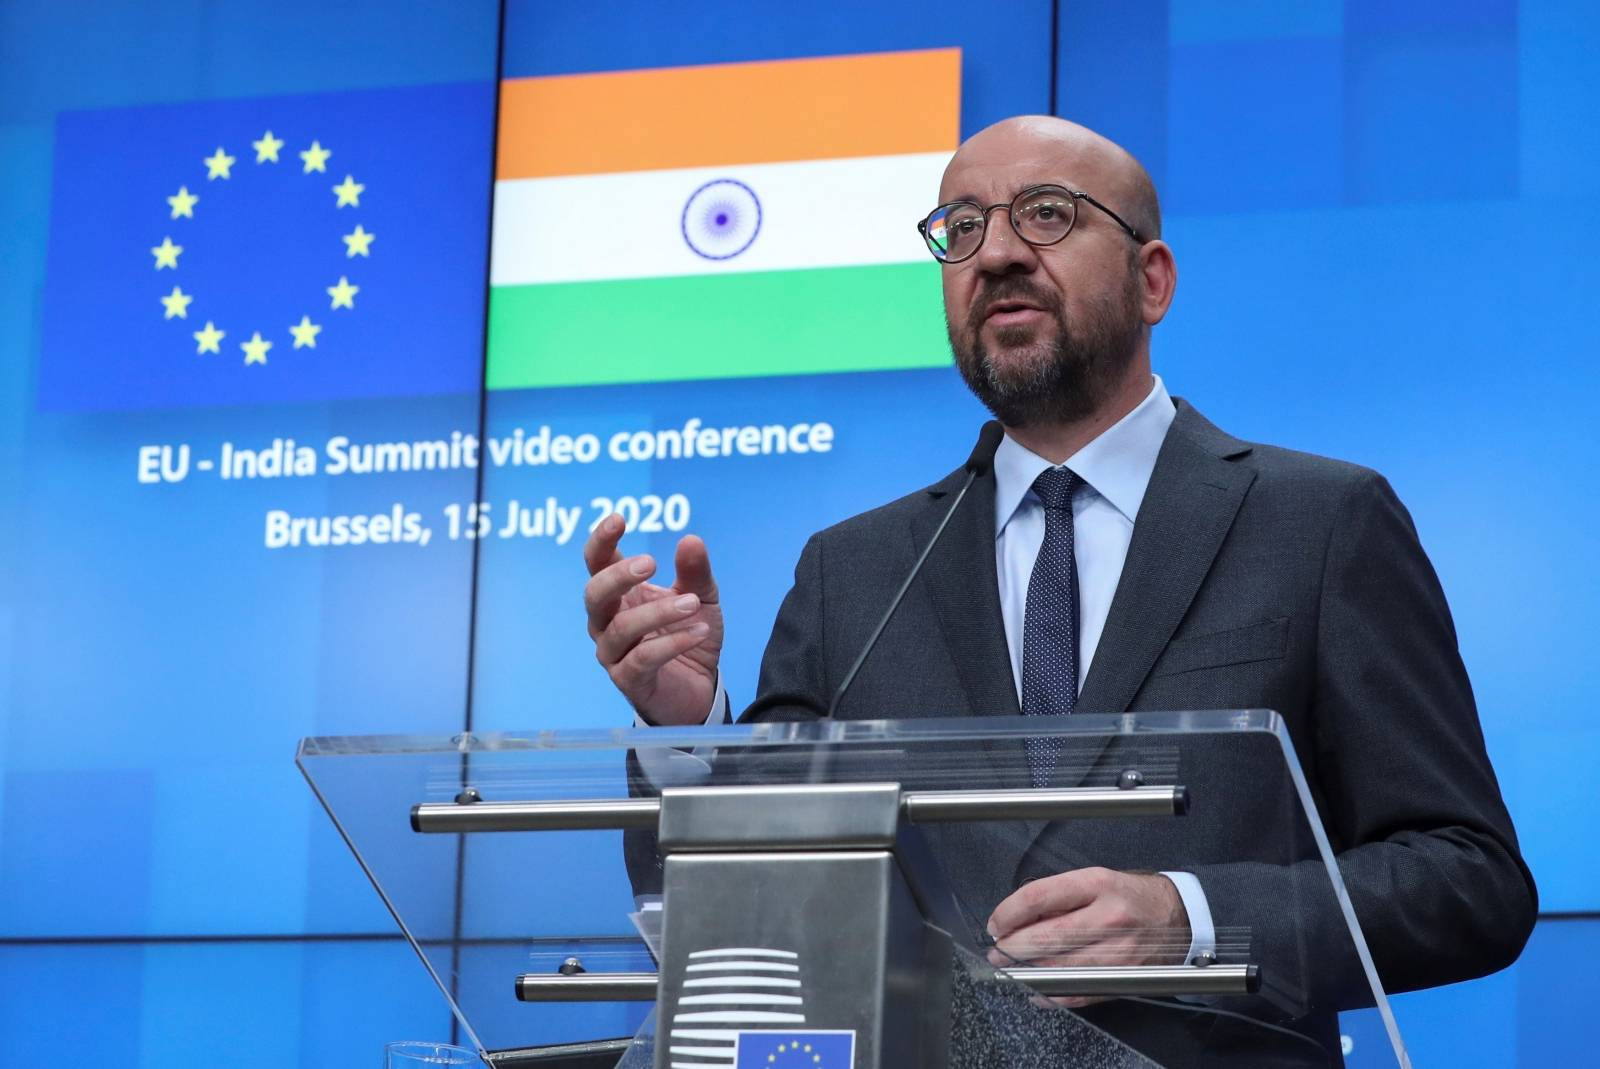 European Council President Charles Michel speaks during a news conference after a virtual summit with Indian Prime Minister Narendra Modi, in Brussels